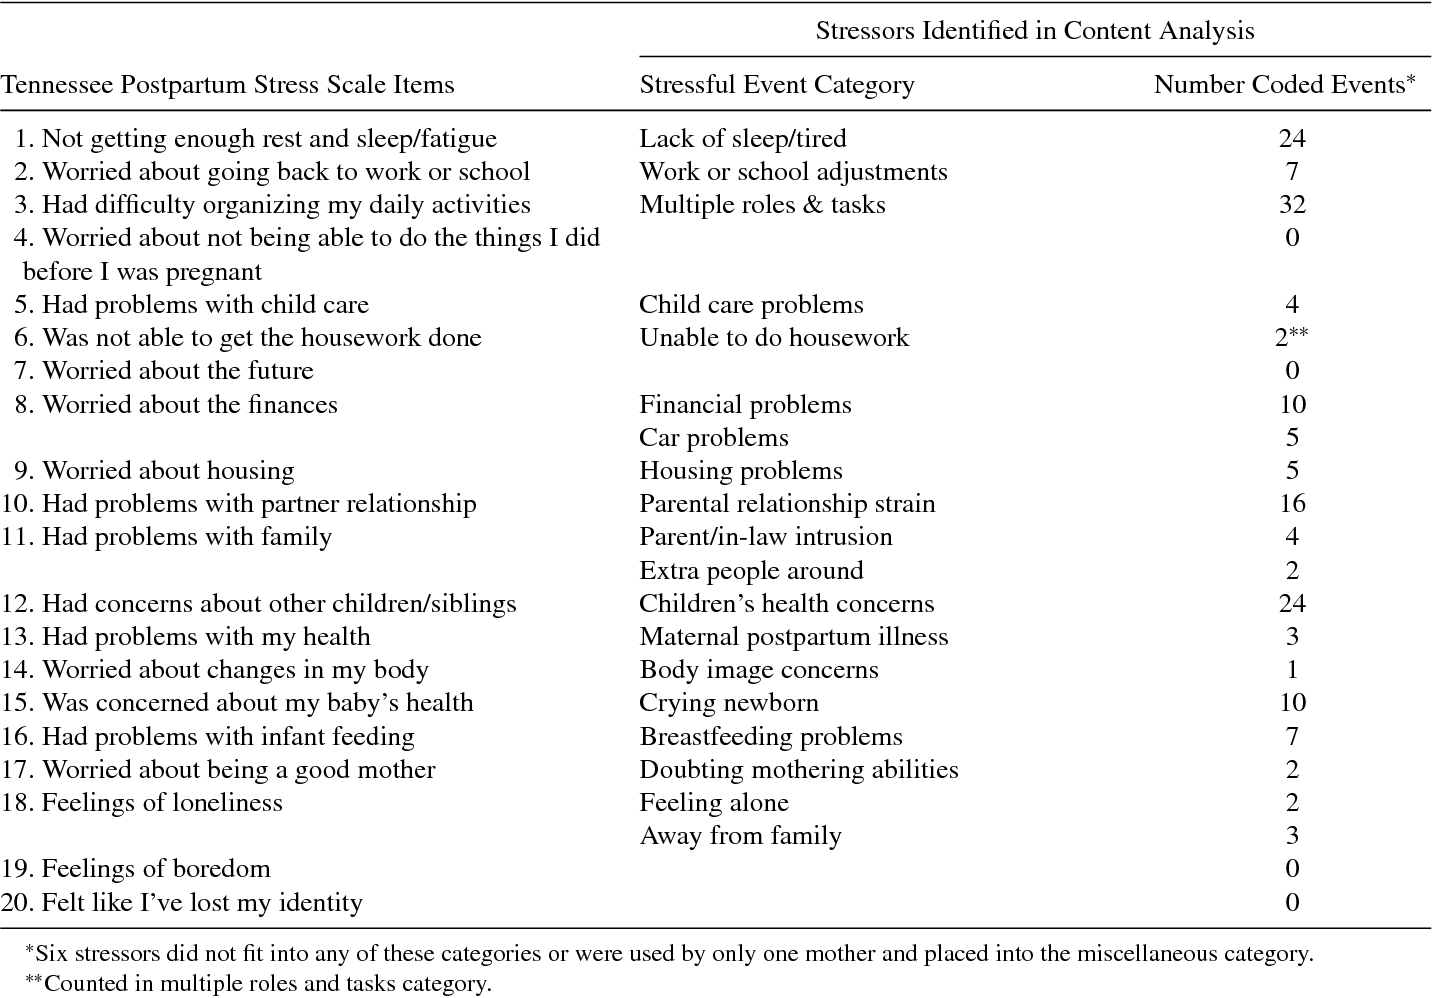 Table 3 from Postpartum stressors: a content analysis  - Semantic